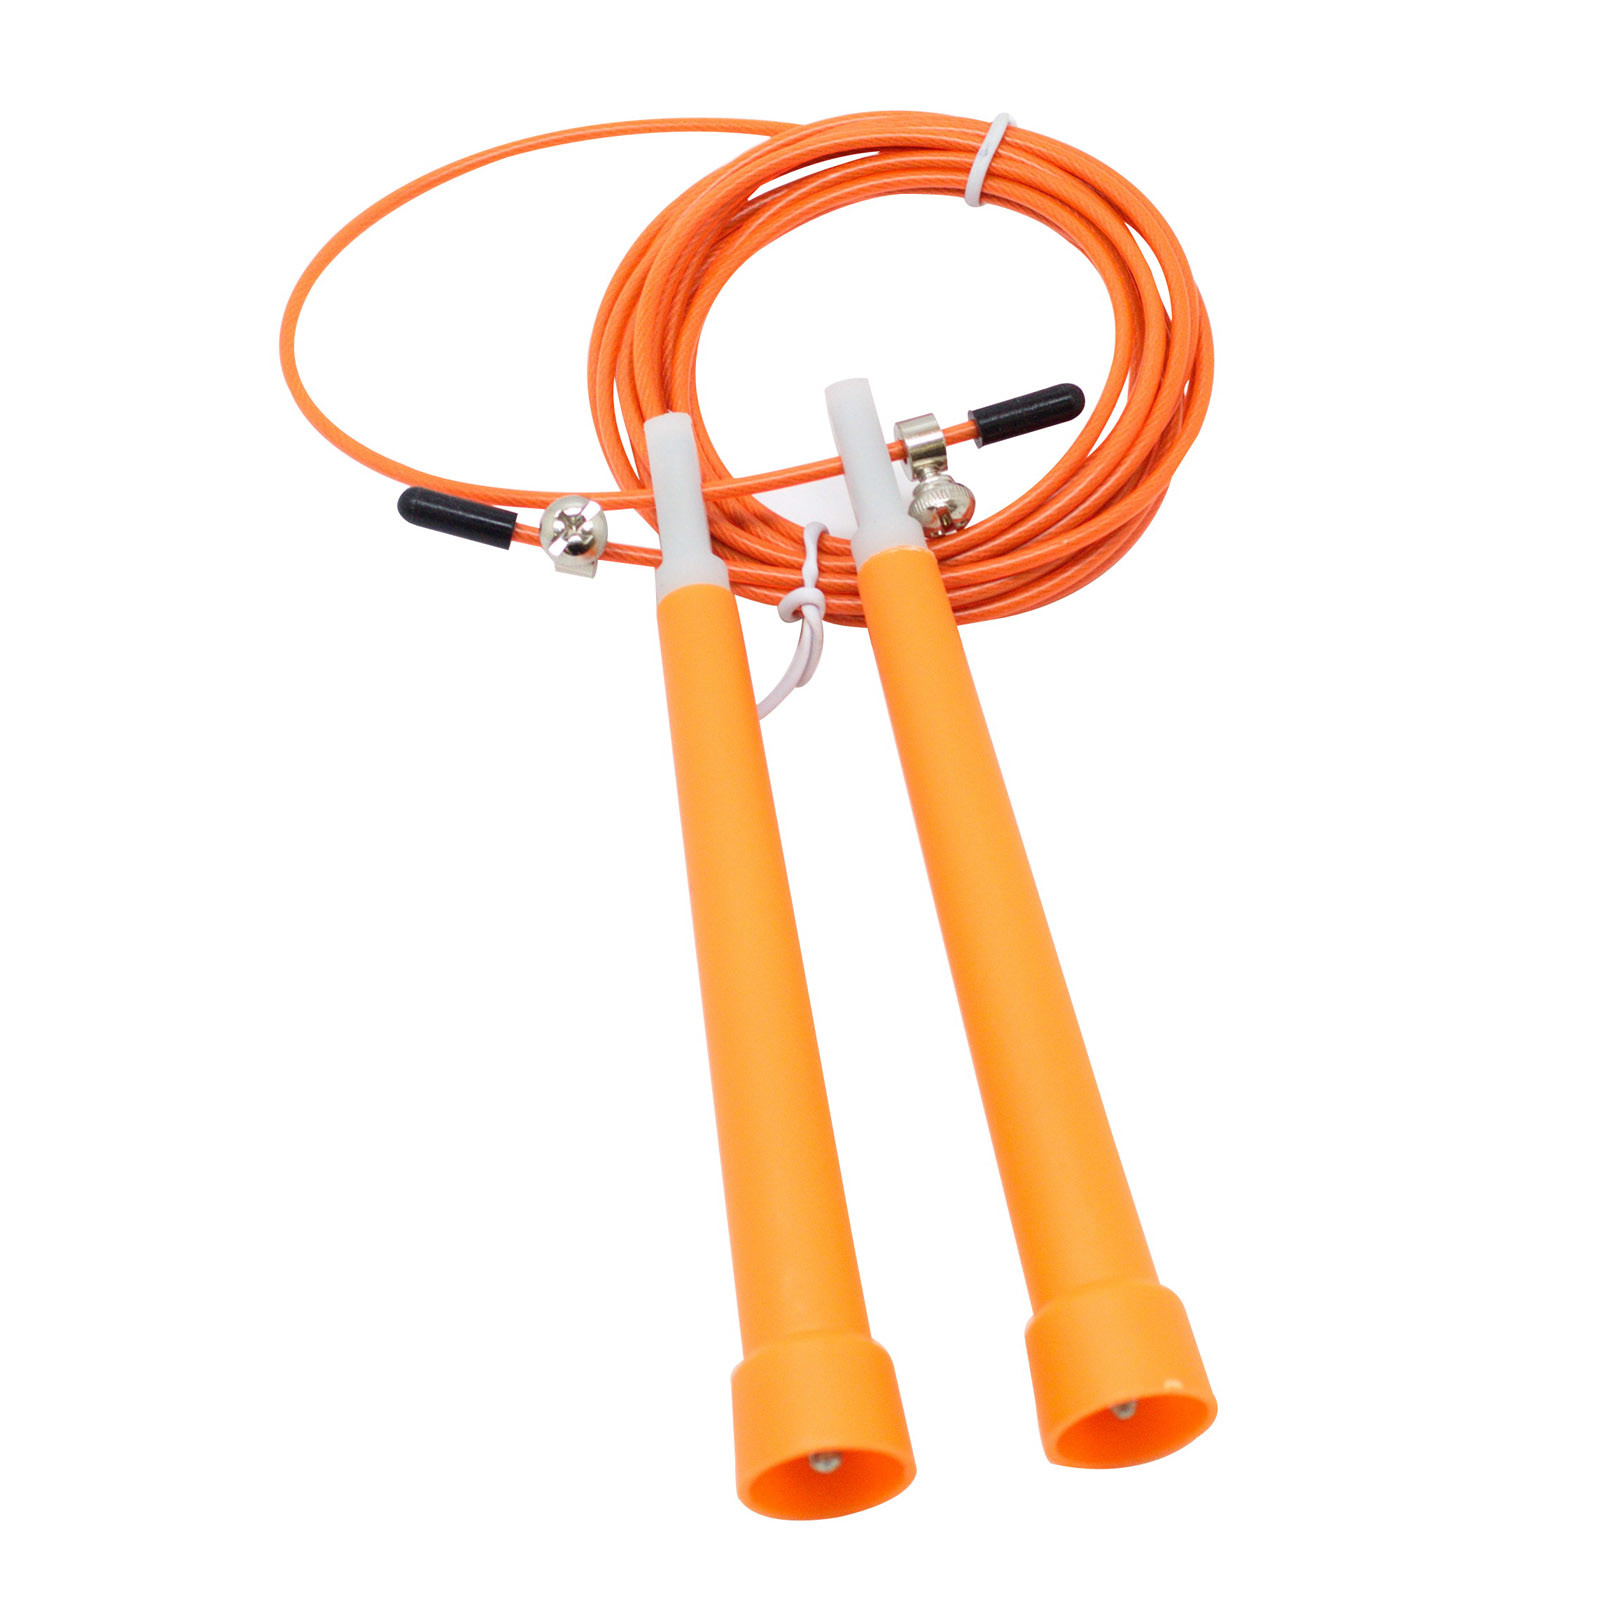 SAS Speed Wire Skipping Adjustable Jump Rope Fitness Exercise Cardio - US Seller